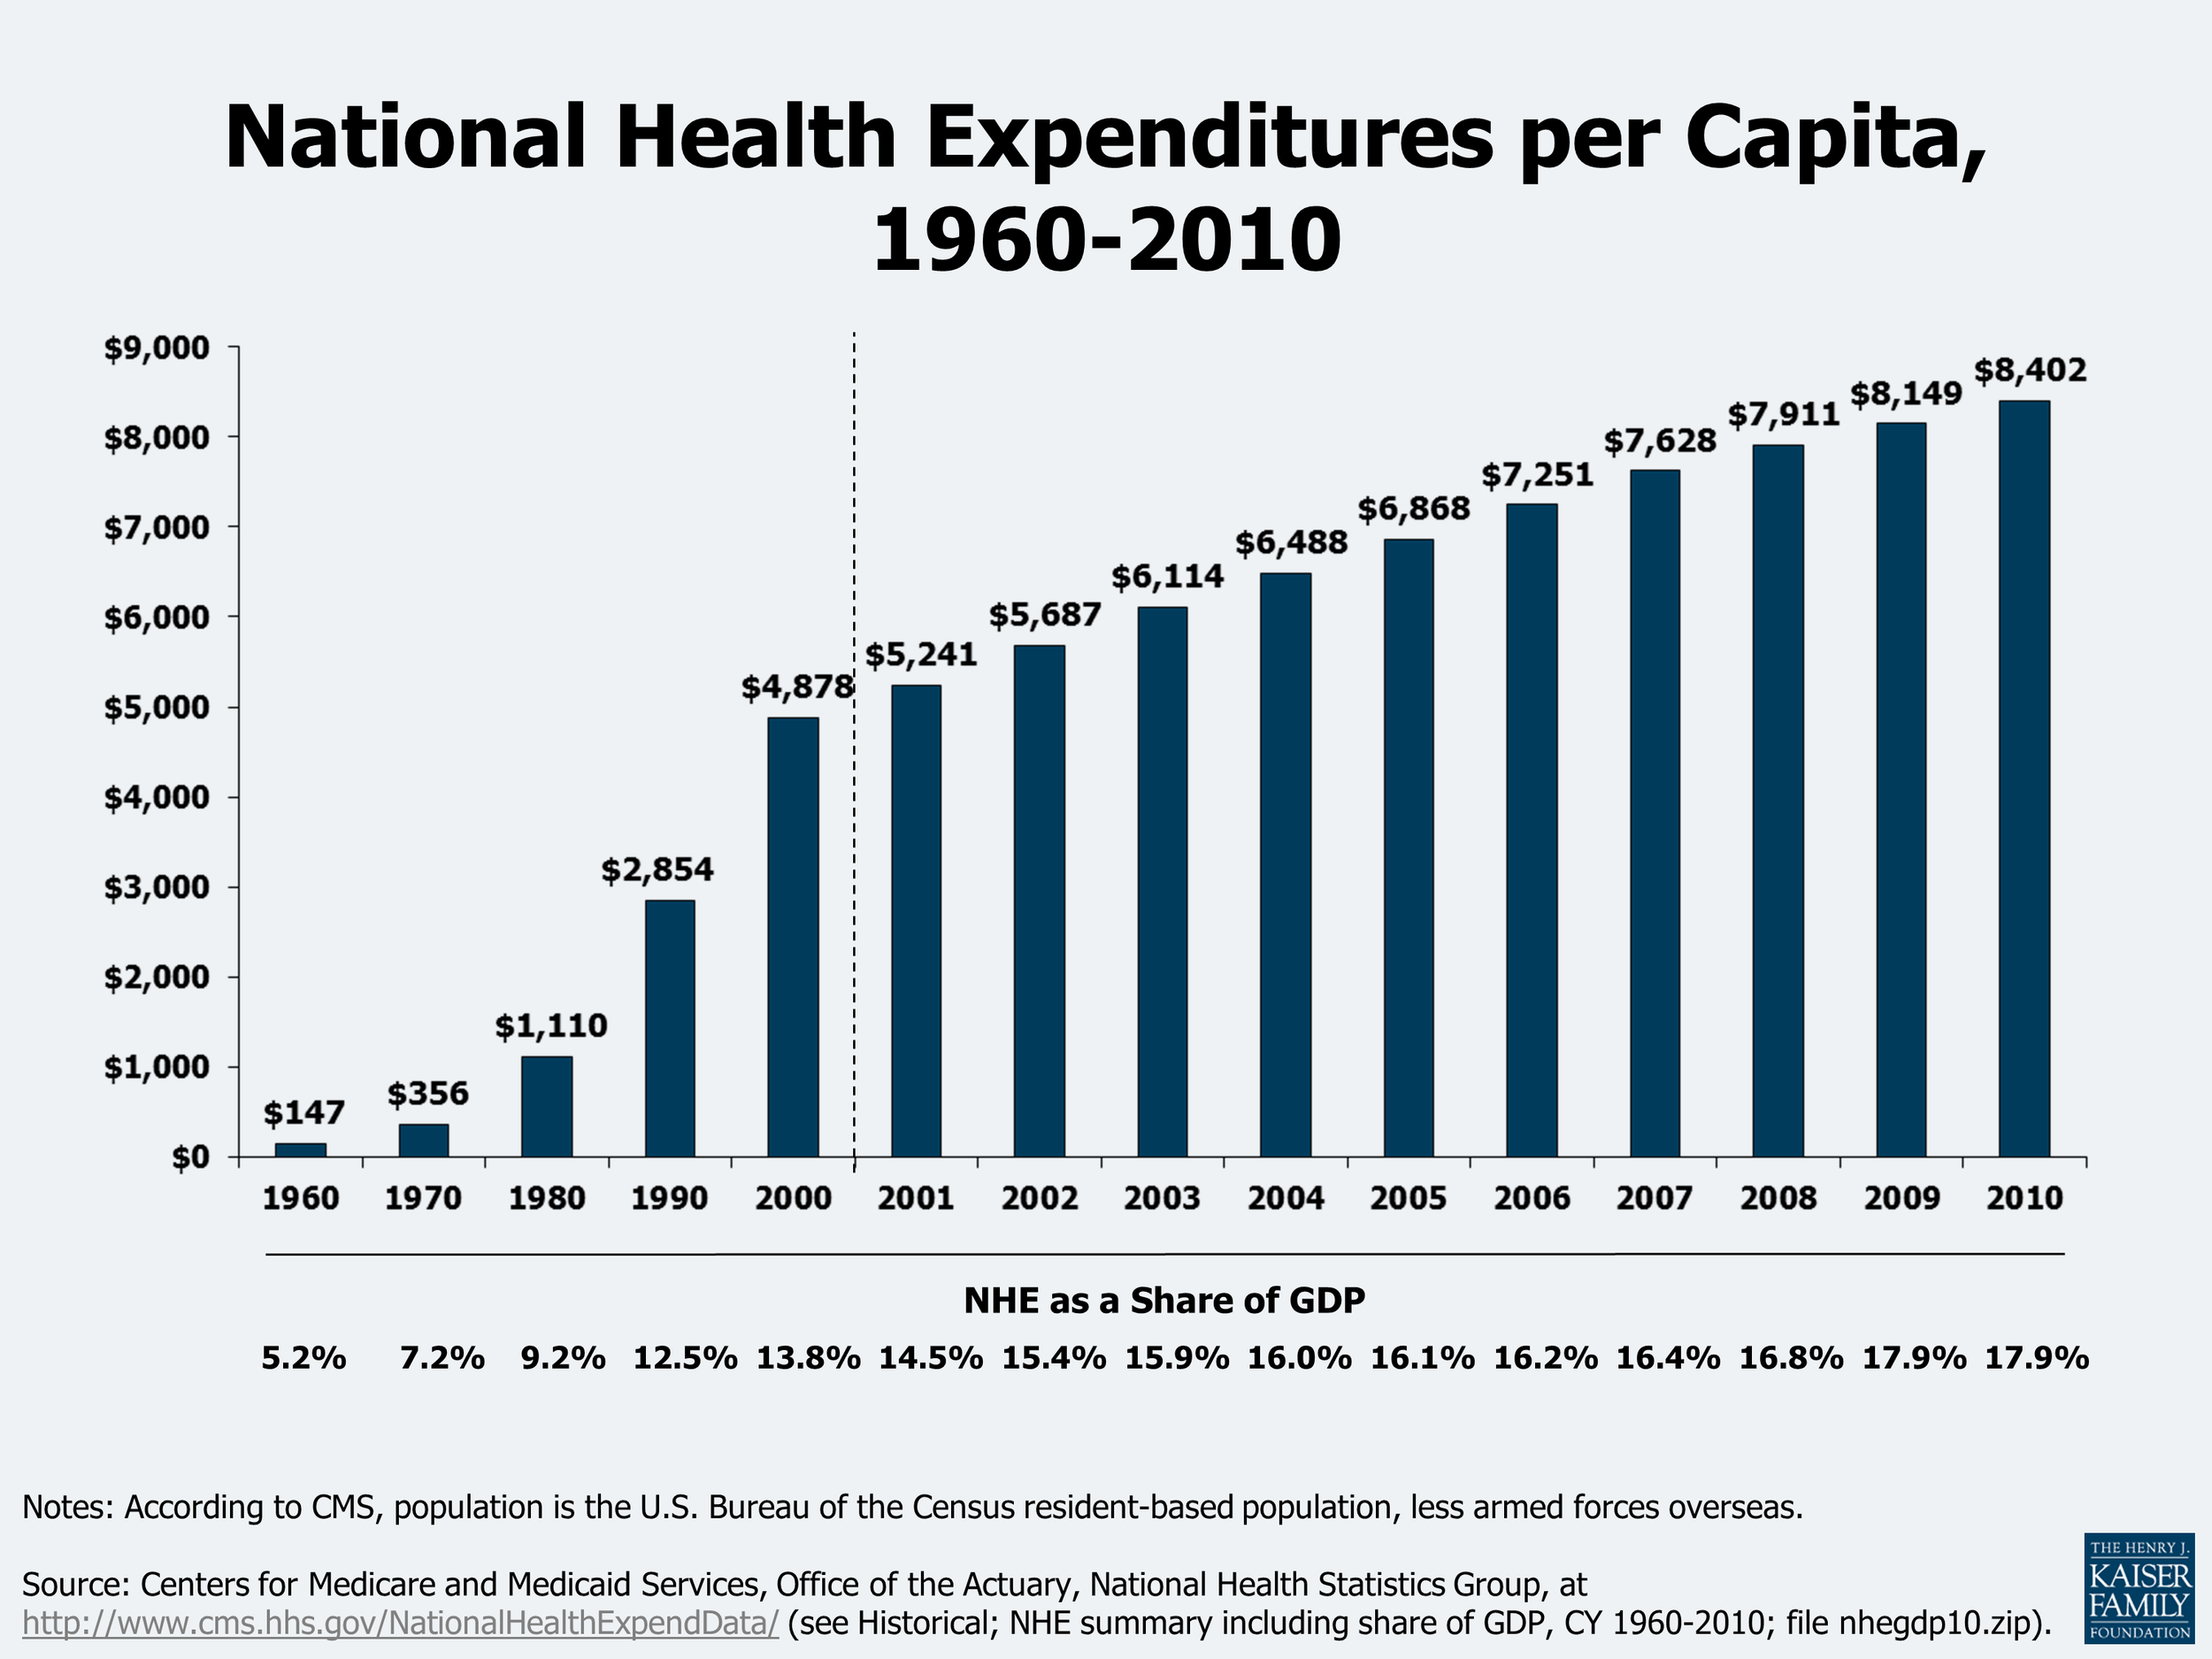 """This graph shows healthcare spending per person in the United States. """" In 1970, total health care spending was about $75 billion, or only $356 per person. In less than 40 years these costs have grown to $2.6 trillion, or $8,402 per person. As a result, the share of economic activity devoted to health care grew from 7.2% in 1970 to 17.9% in 2010."""" This information is taken from the Kaiser Family Foundation: http://kff.org/report-section/health-care-costs-a-primer-2012-report/"""